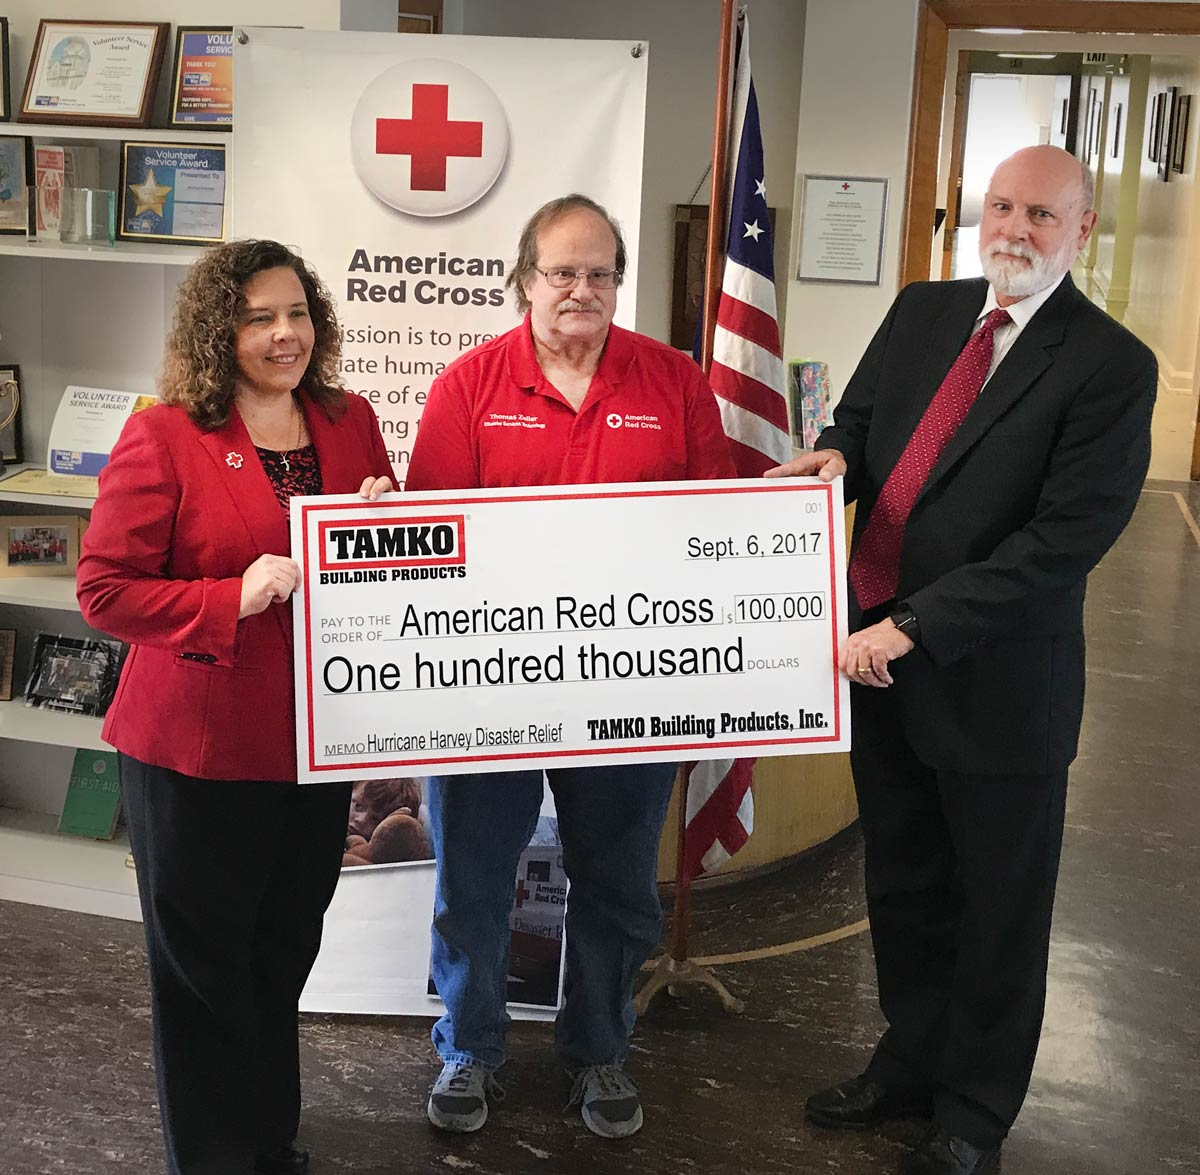 TAMKO Non-profit - Red Cross Donation 2017